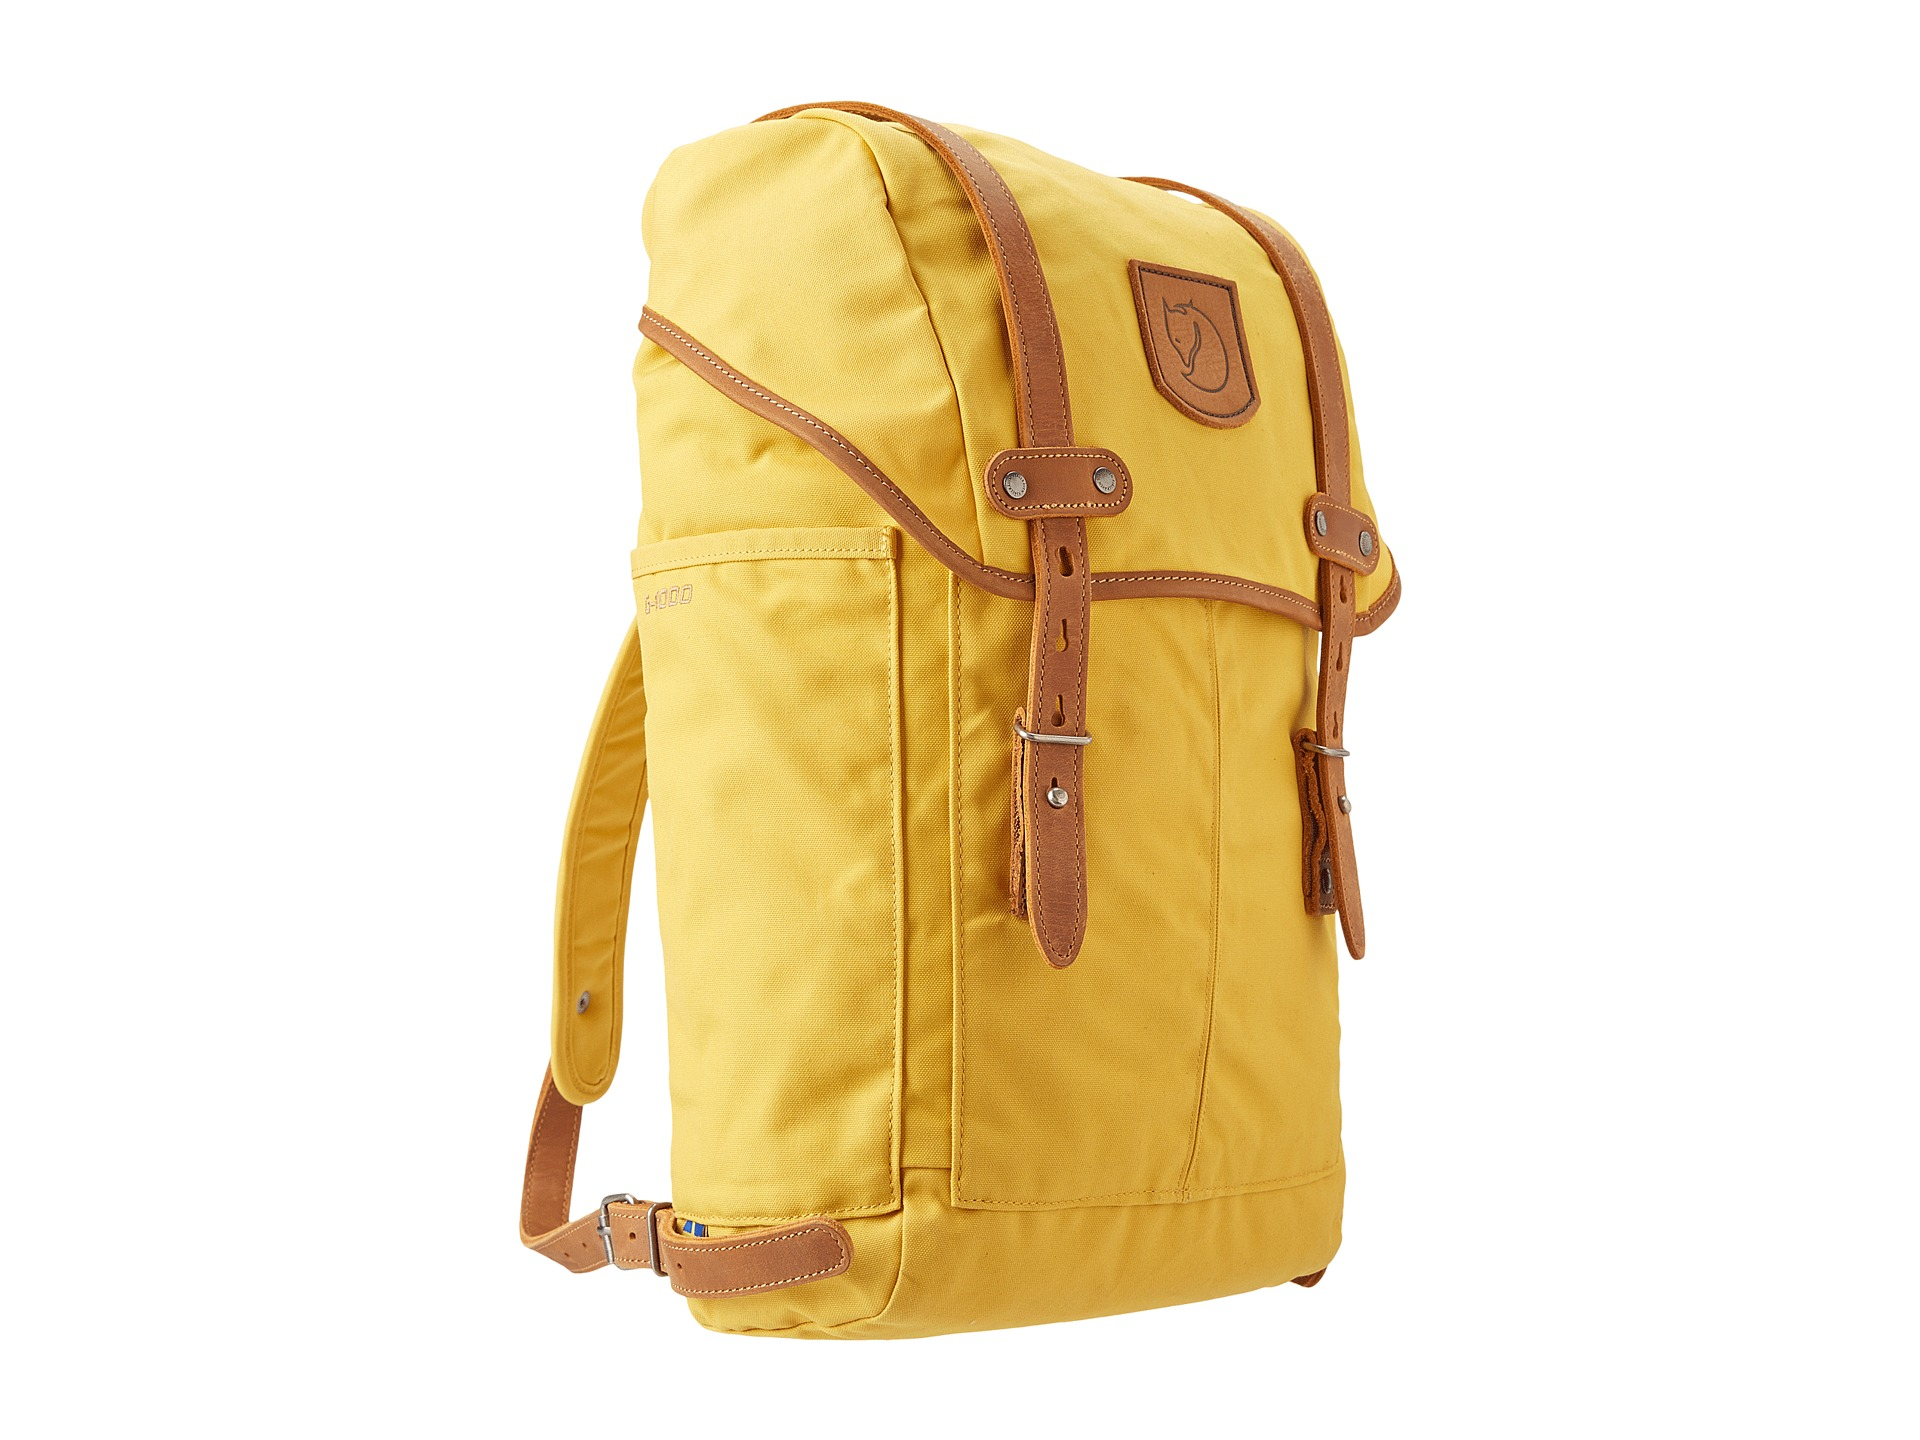 3463bab0d4b5 Lyst - Fjallraven Rucksack No. 21 Small in Yellow for Men